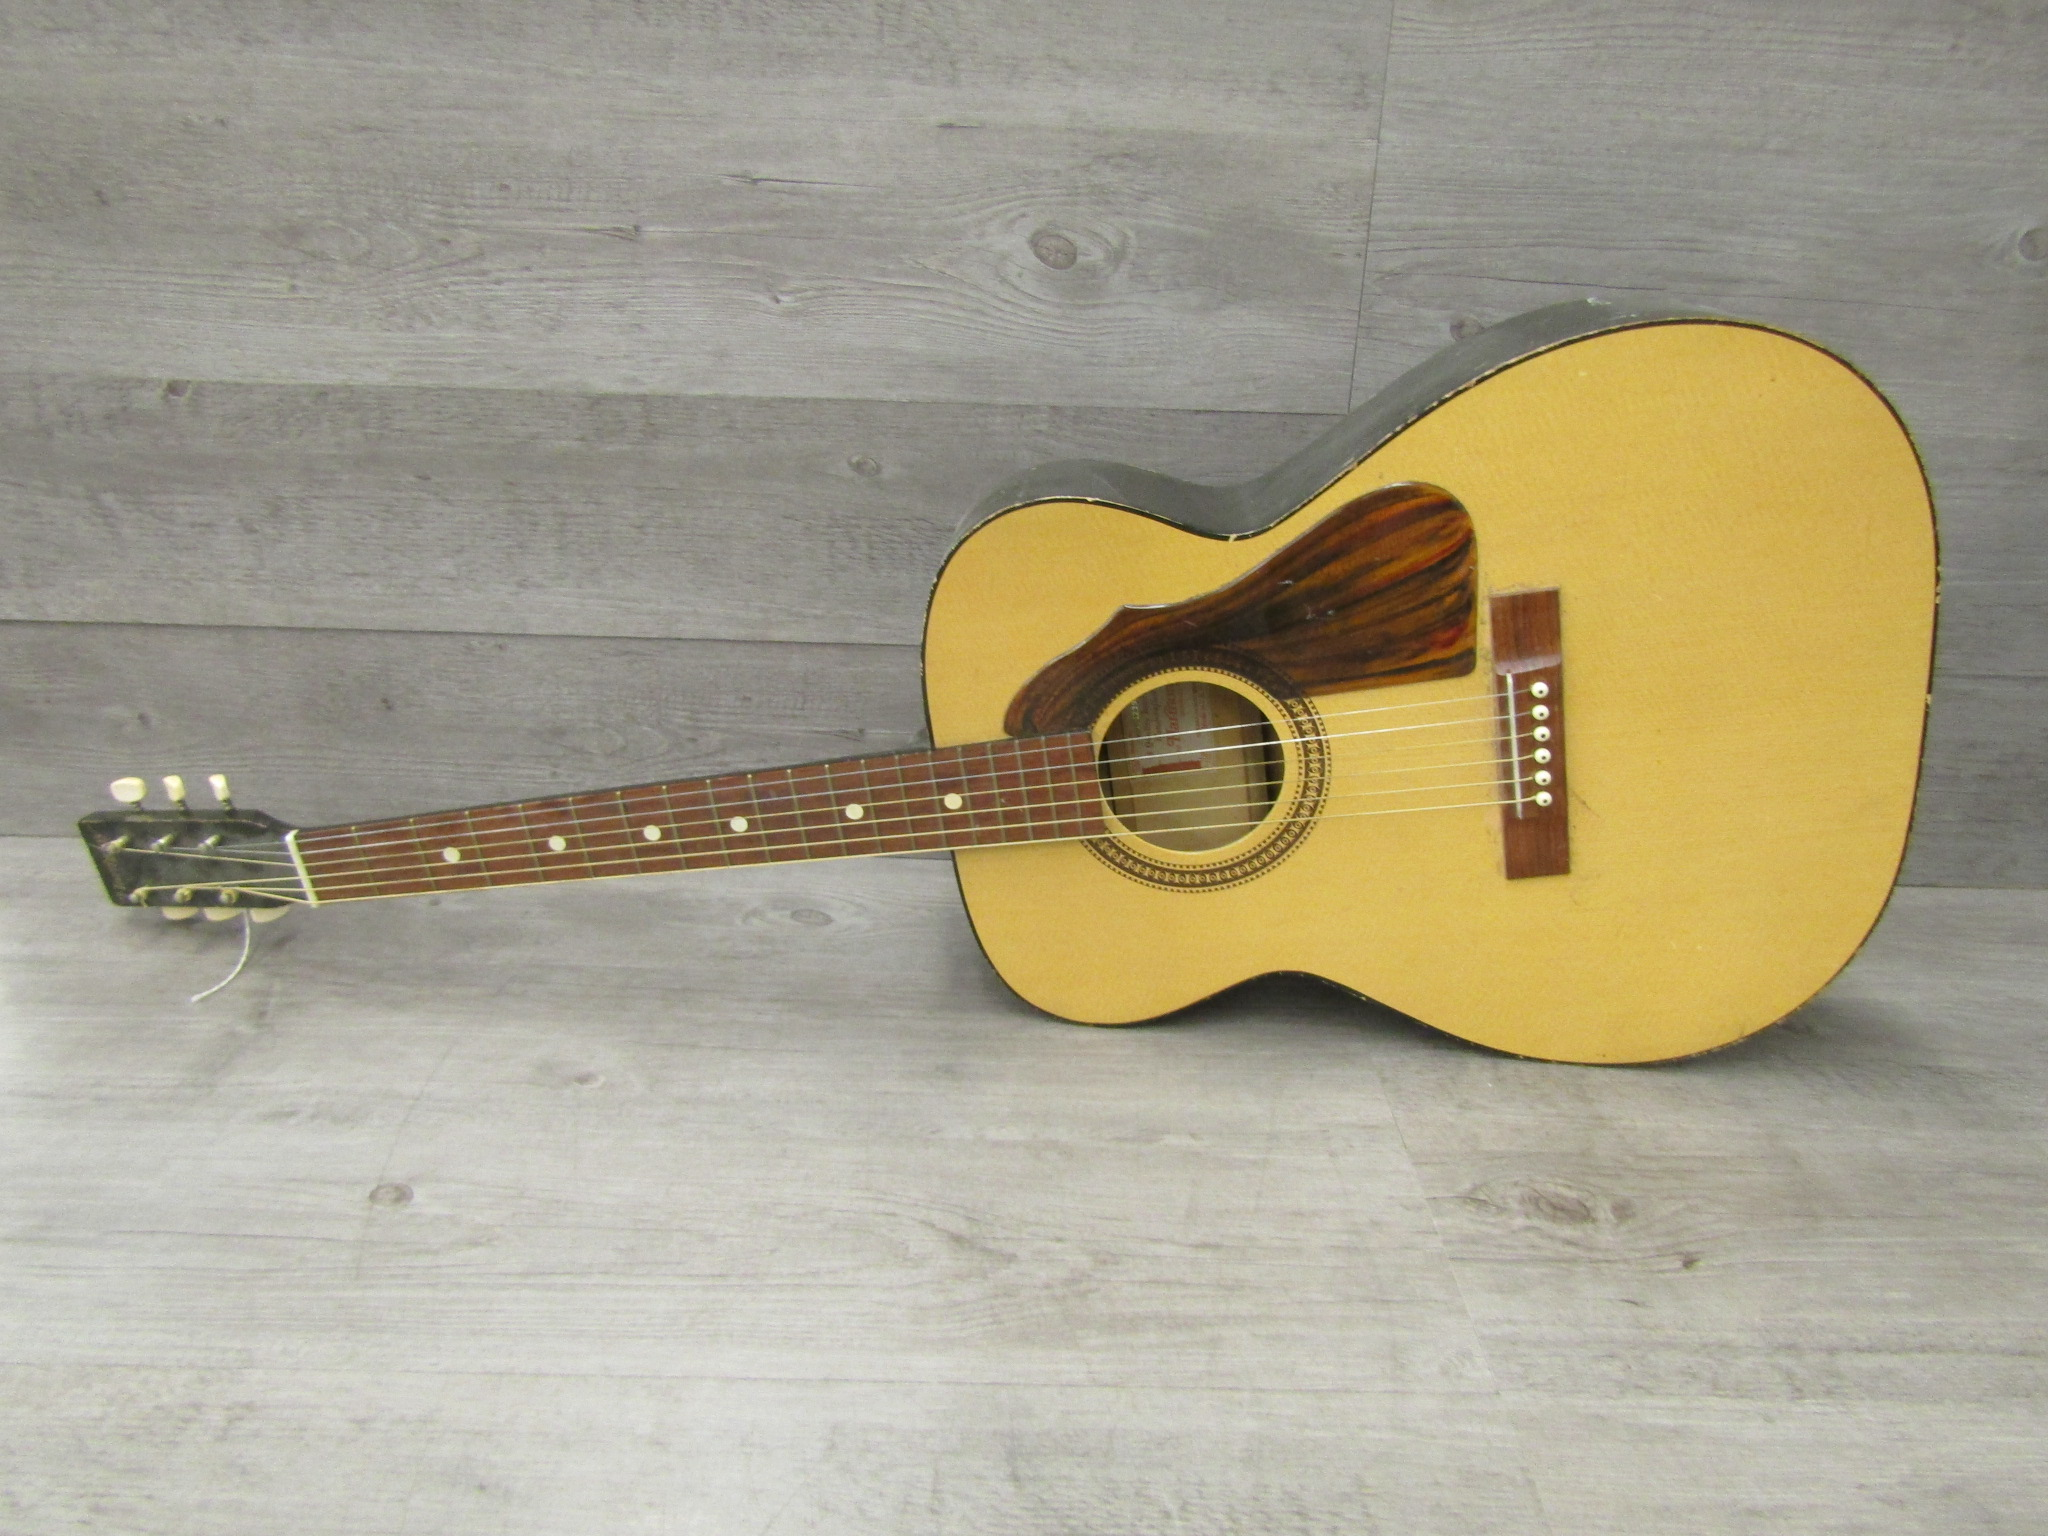 harmony acoustic guitar model 319 made in the usa 7821h1239 for parts or repair ebay. Black Bedroom Furniture Sets. Home Design Ideas